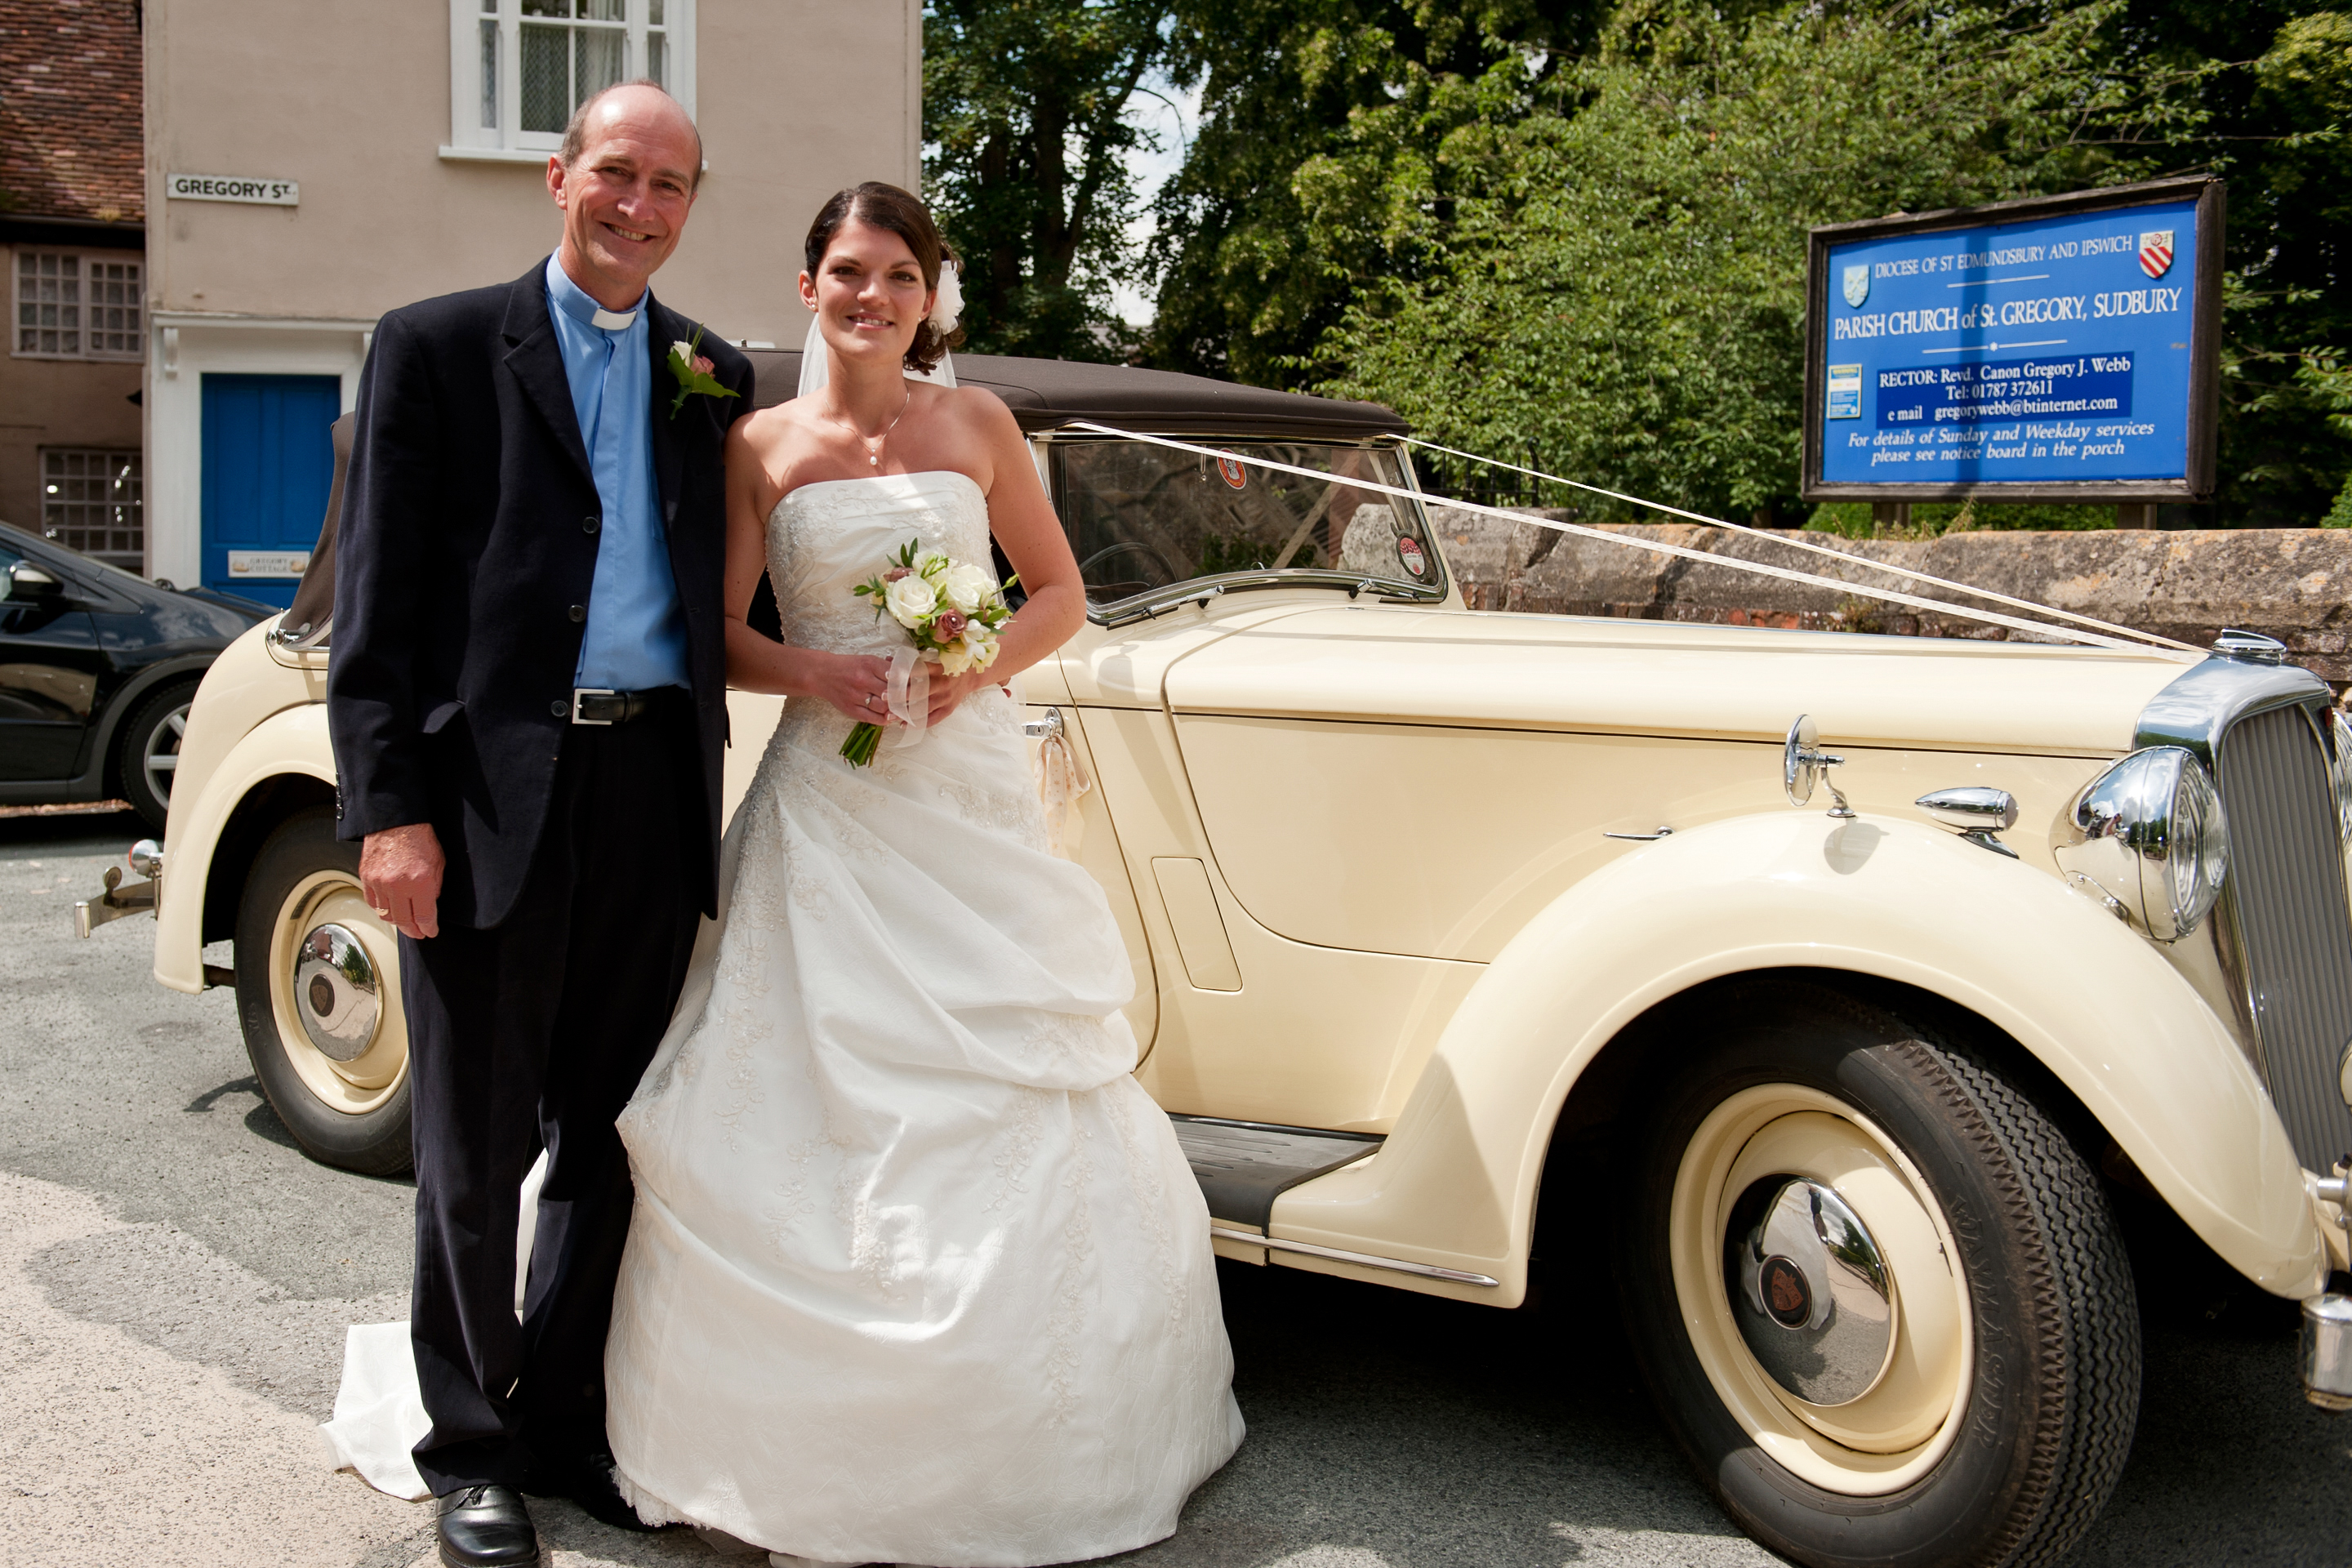 Wedding Photography Sudbury – Image of the Week